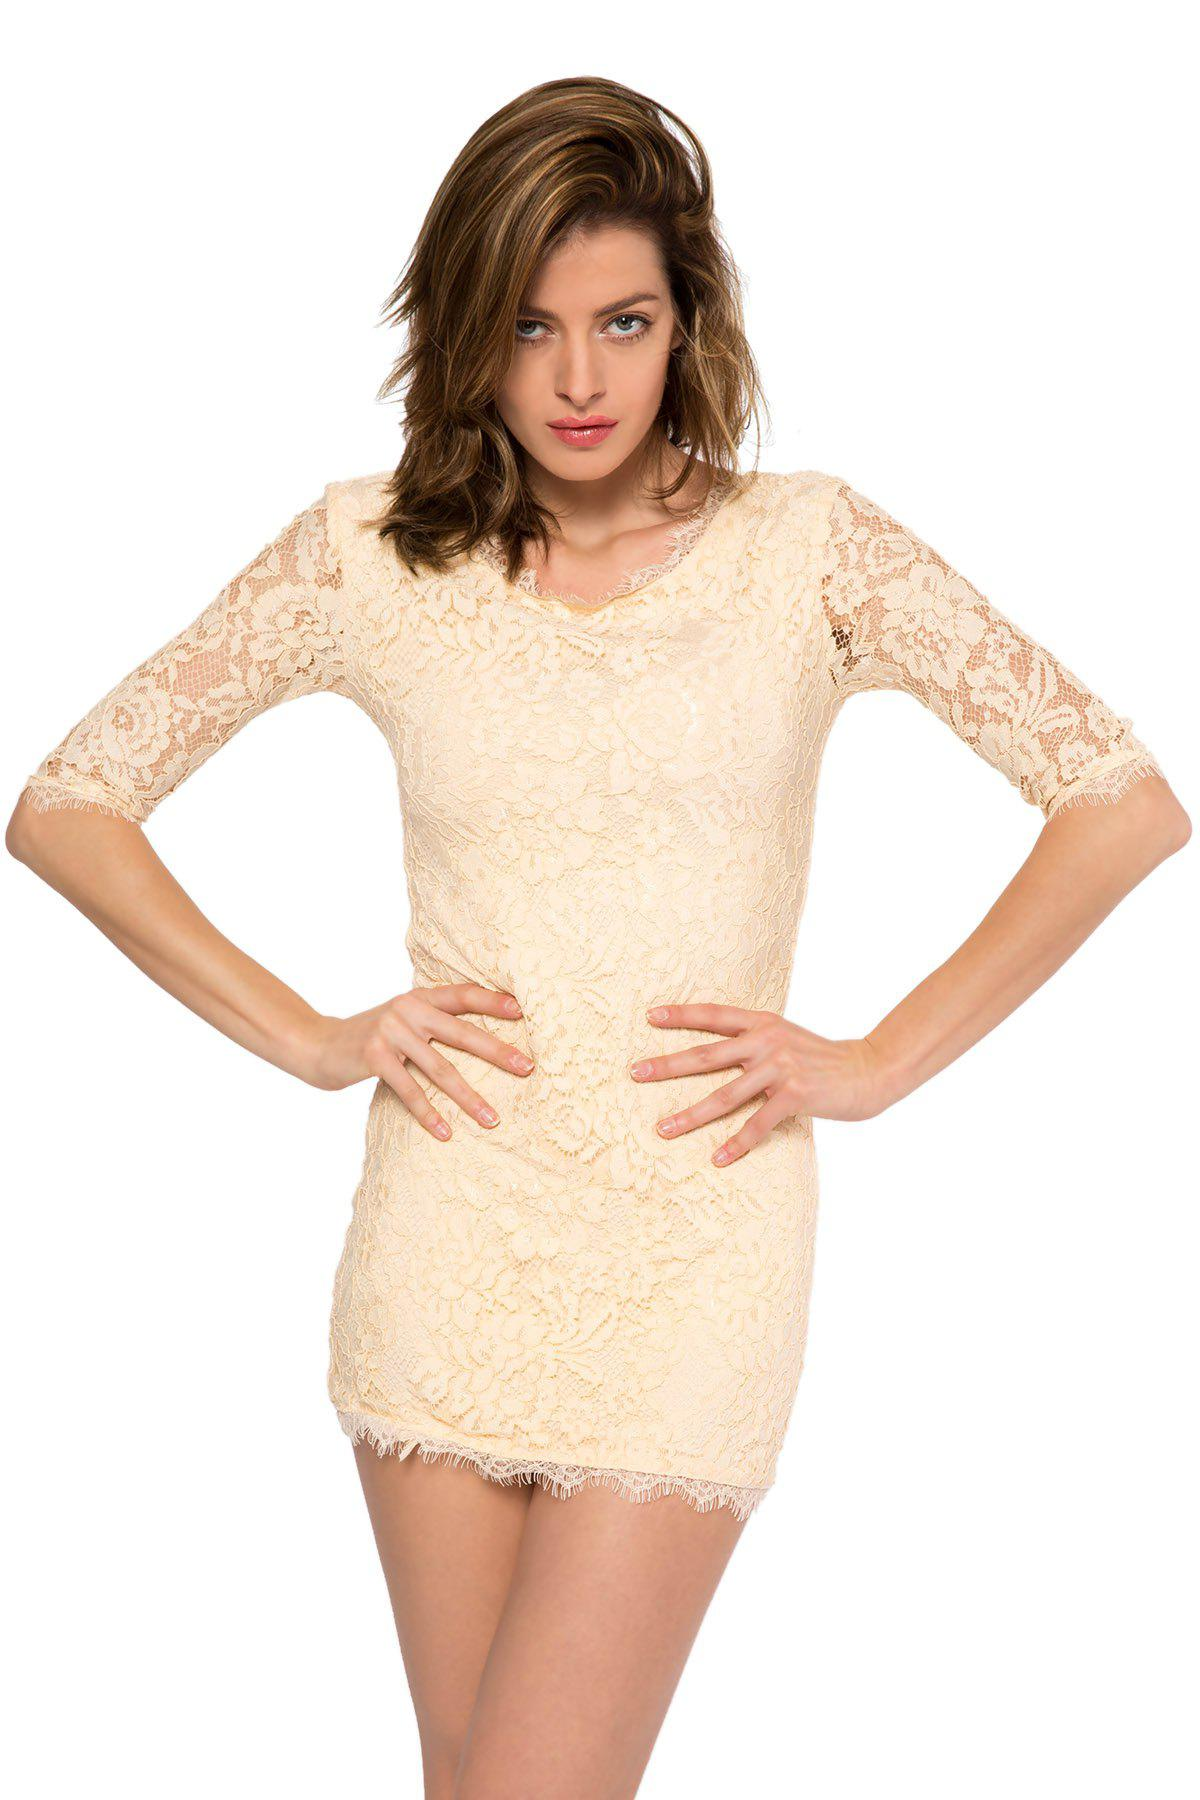 Trendy Style Scoop Collar 3/4 Sleeve Solid Color Slimming Women's Lace Dress - BEIGE L